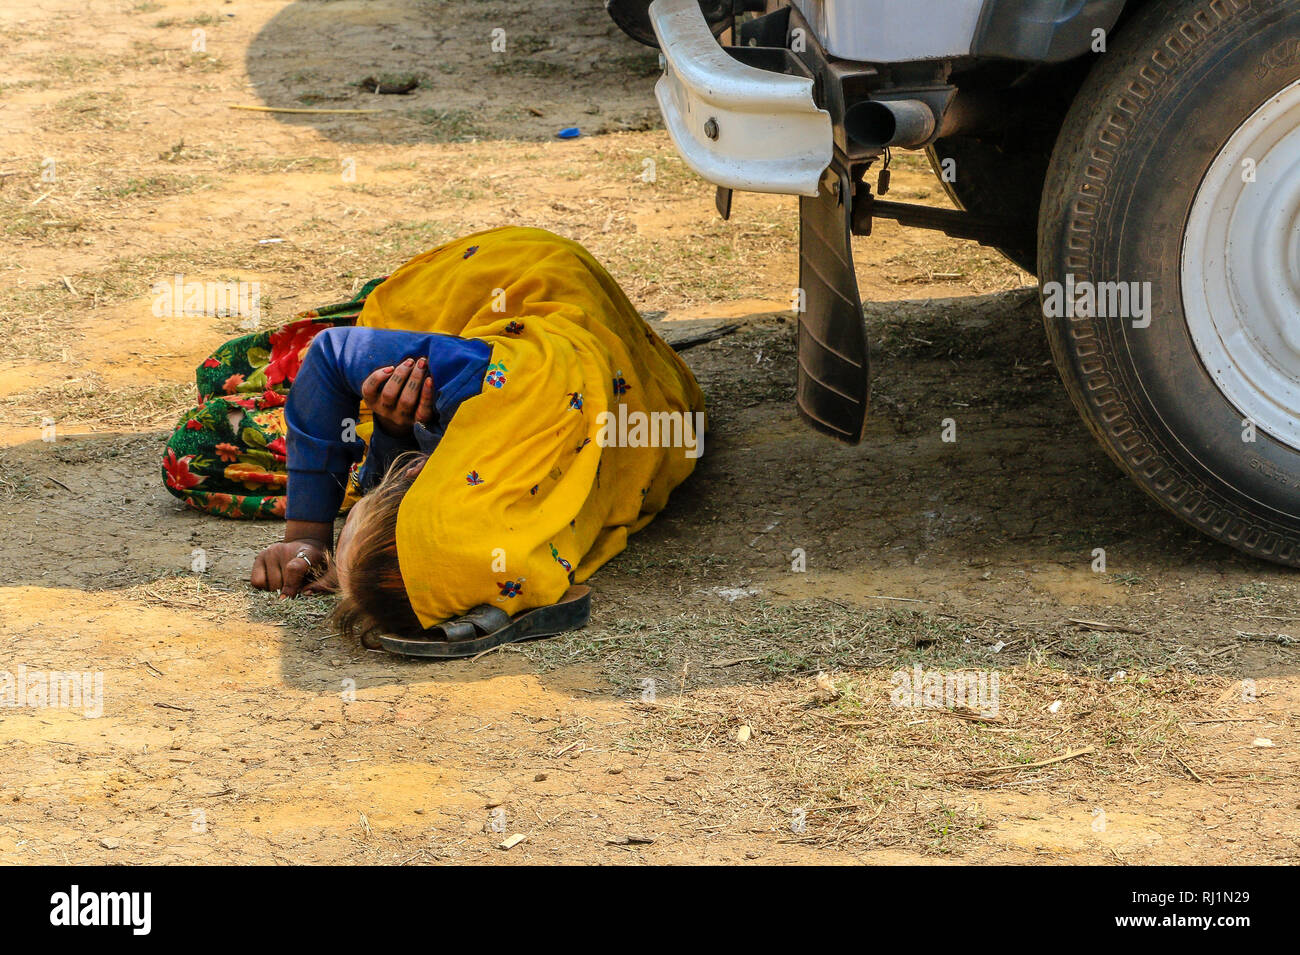 Homeless,Hrijan, untouchable,  Indian woman risks danger by sleeping under the wheels of a truck to escape the heat of the sun, Anjuna  Market, India - Stock Image